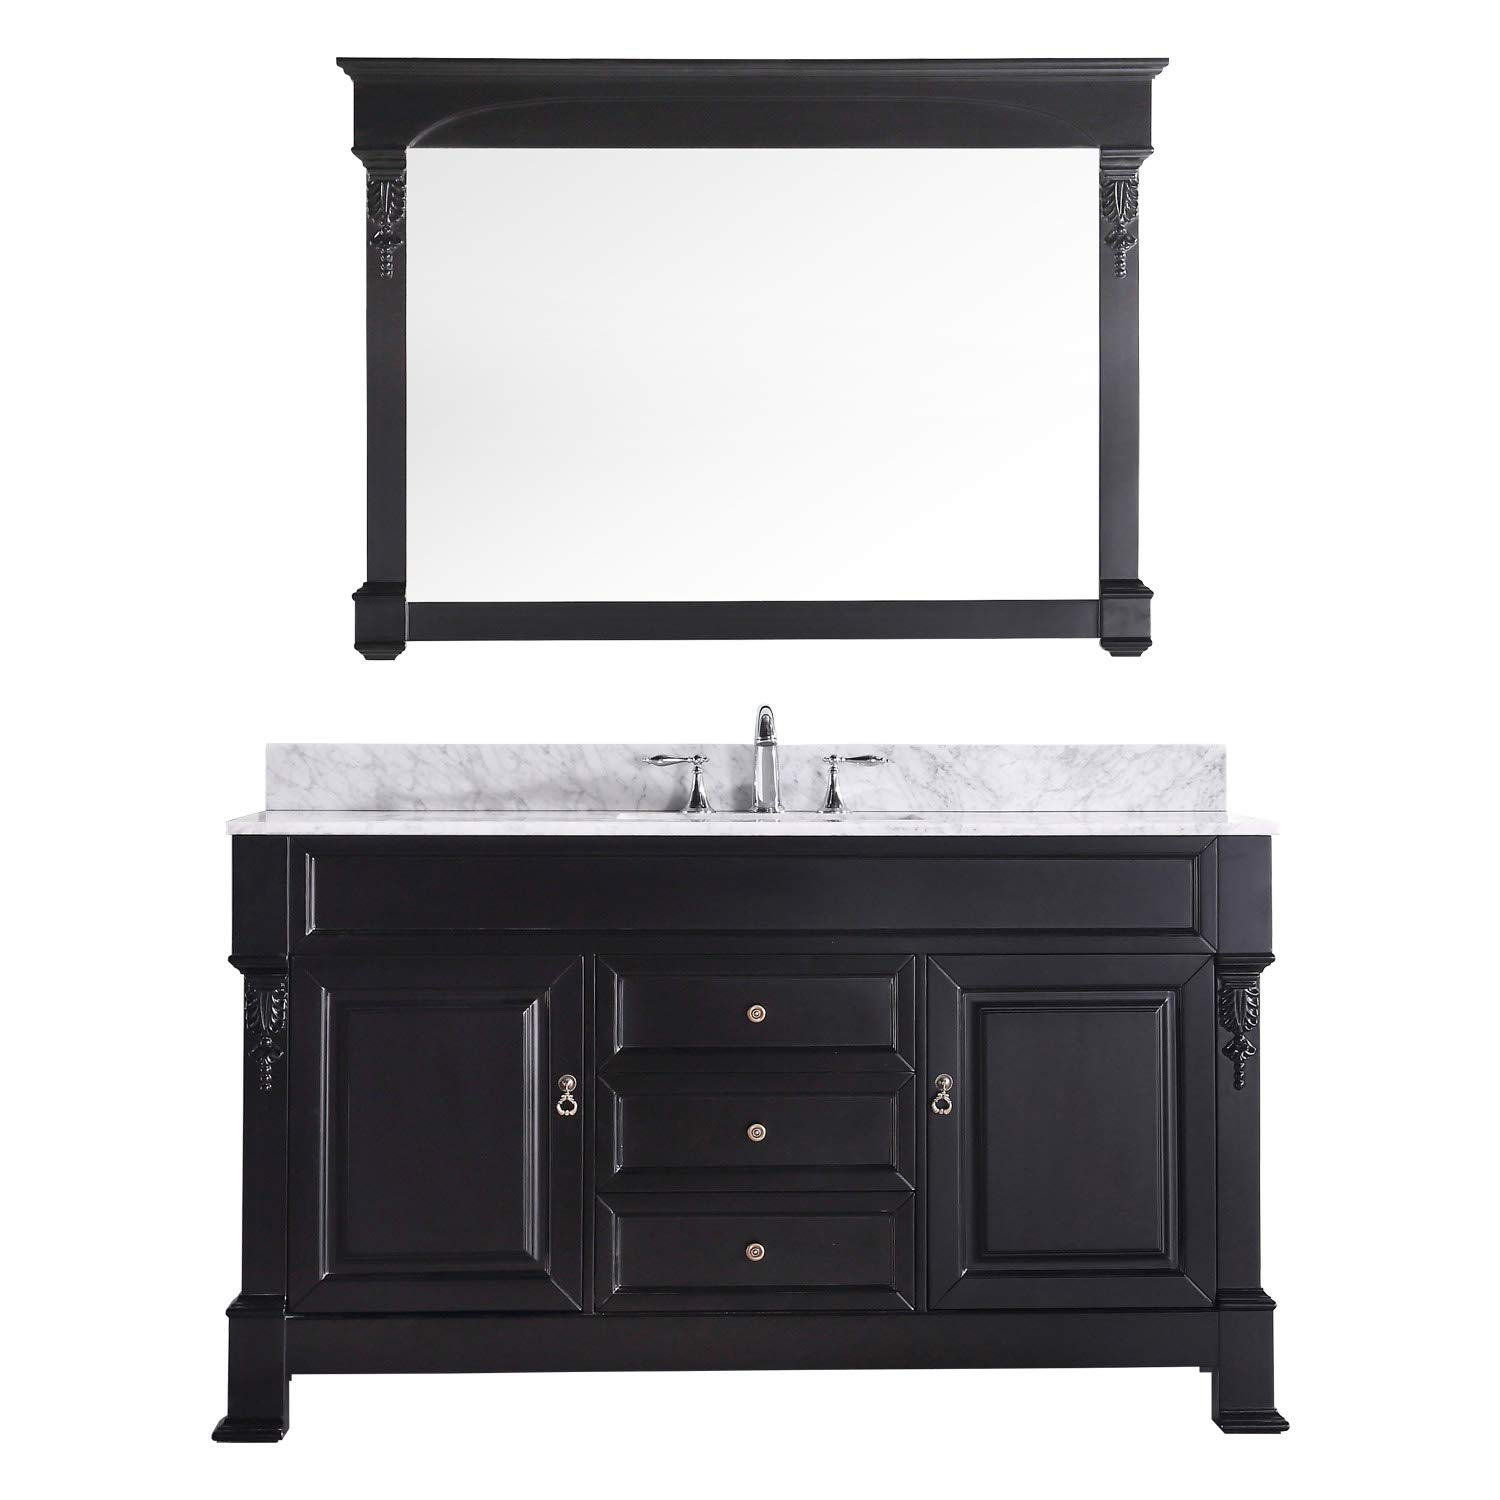 """Virtu USA GS-4060-WMSQ-DW-002 Huntshire 60"""" Single Bathroom Vanity in Dark Walnut with Marble Top and Square Sink with Polished Chrome Faucet and Mirror, 60 inches,"""